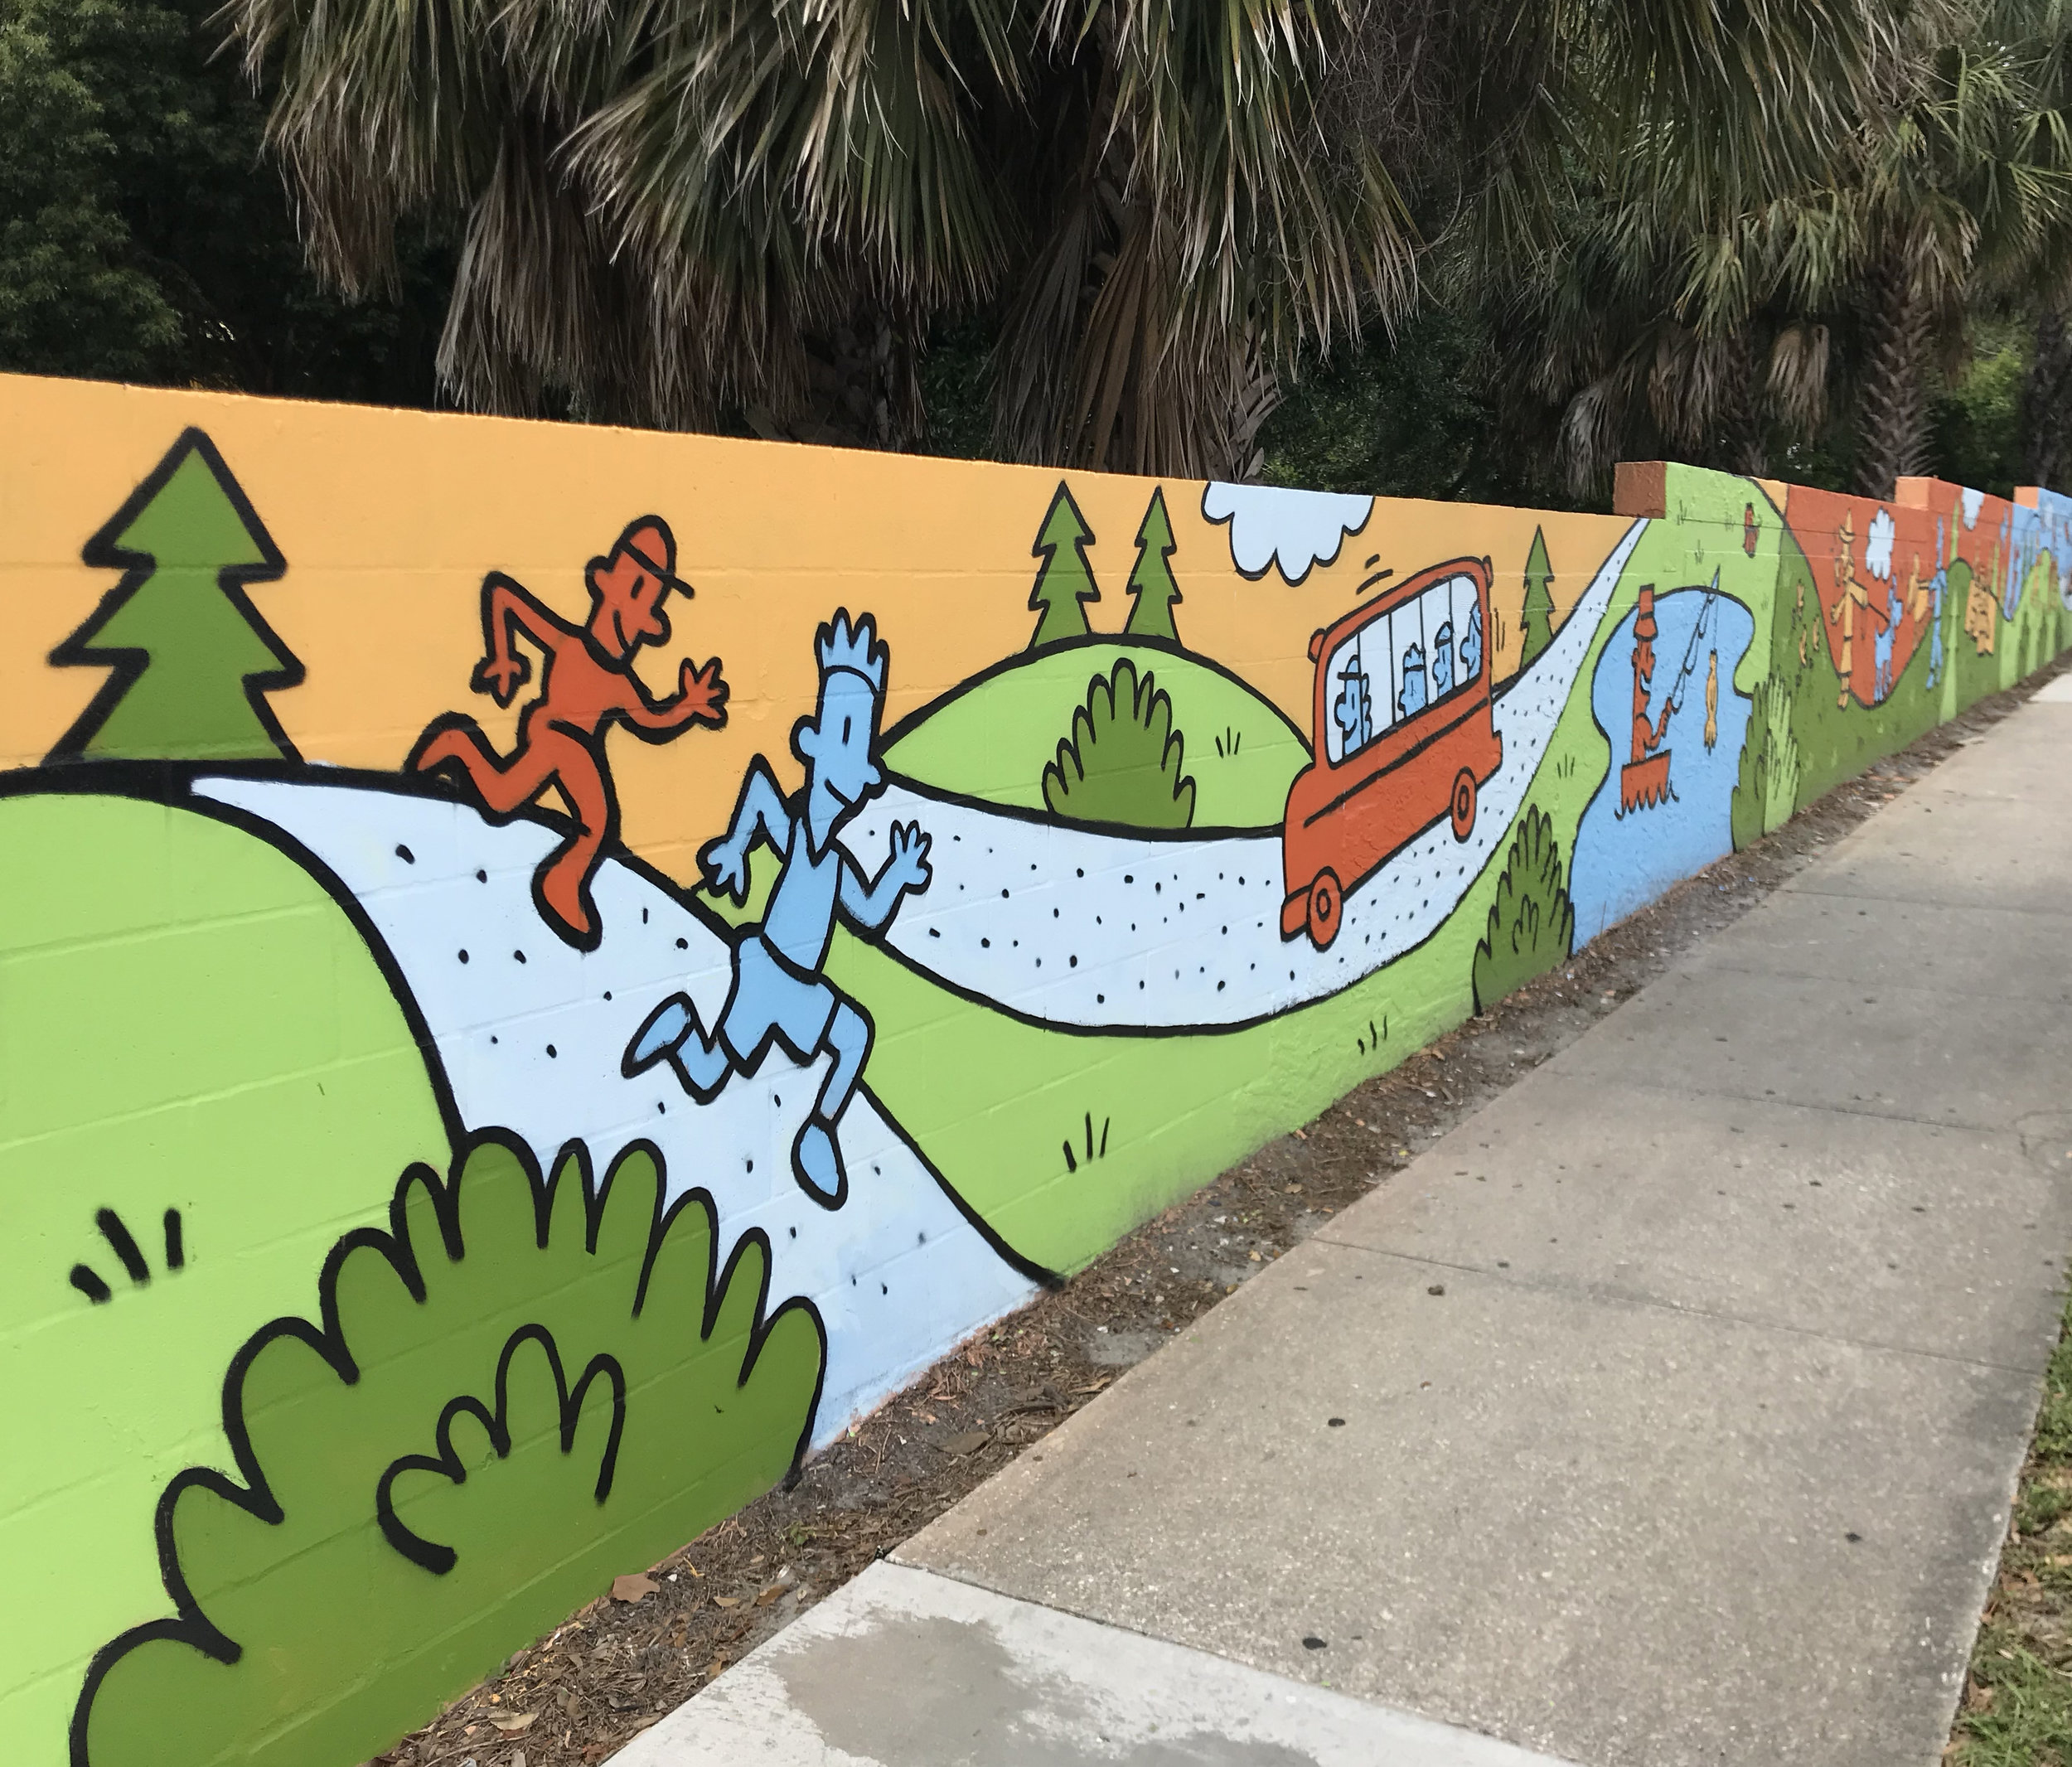 In March 2019,  United Cerebral Palsy (UCP) of Central Florida Charter School  asked me to design a mural for a 6 ' x 200 ' wall at their Pine Hills Campus in Orlando, Florida. The painting was produced and overseen by  Joe Starkweather  and a group of over 60 friendly and helpful volunteers helped with the painting. The mural was completed on May 10, 2019.